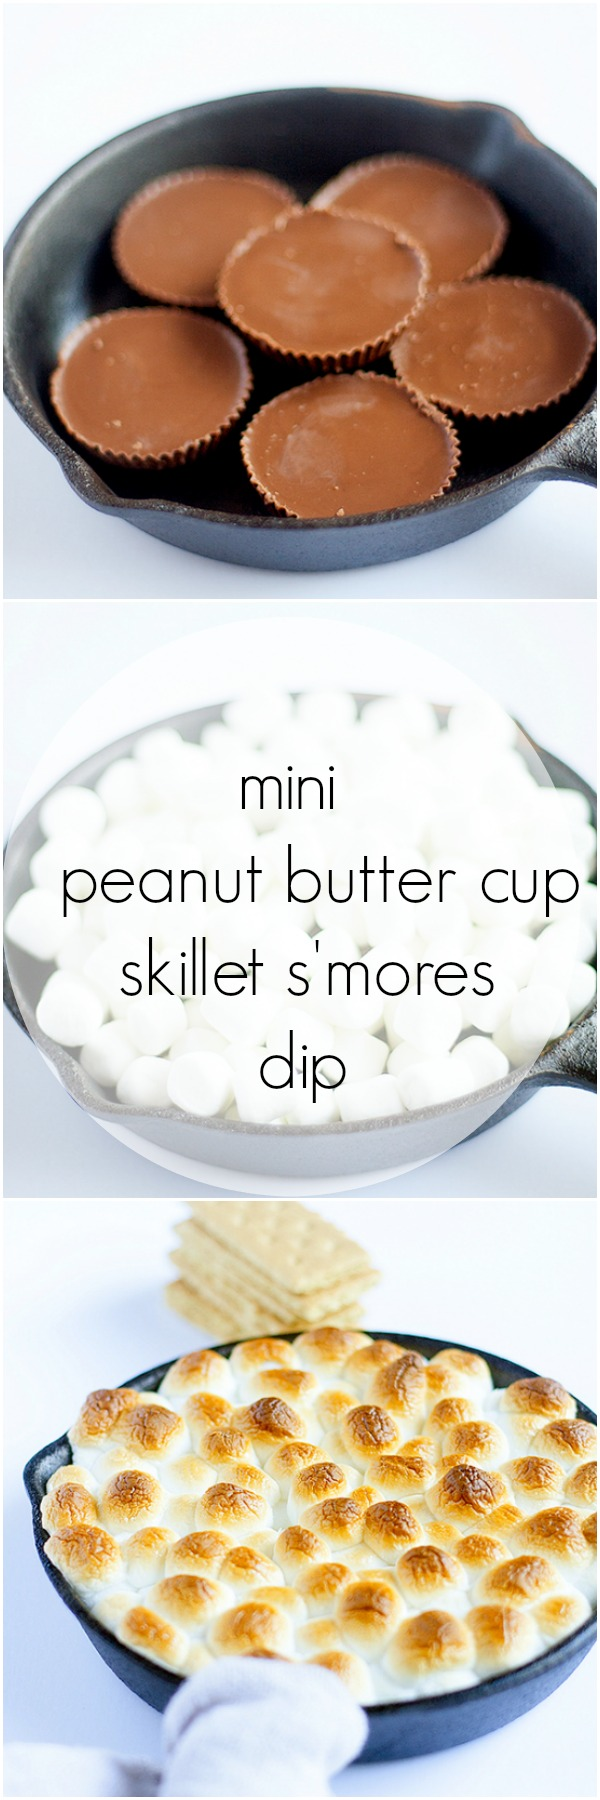 mini peanut butter cup skillet s'mores dip #shareit